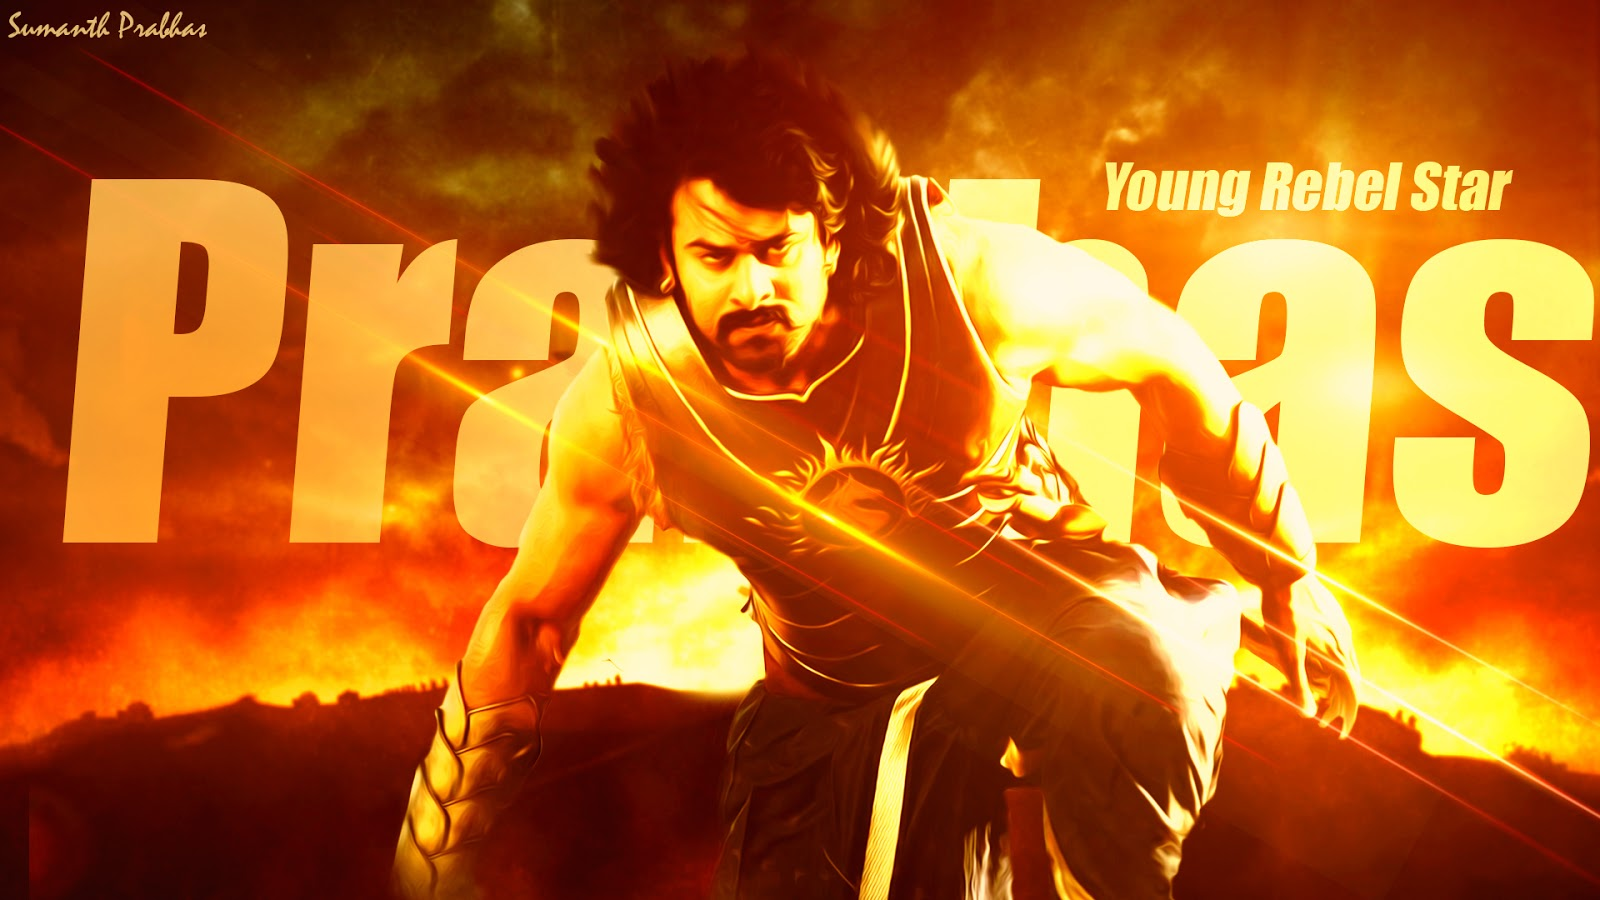 Good Wallpaper Logo Raju - bahubali_actor_prabhas-HD  Gallery_515443.jpg